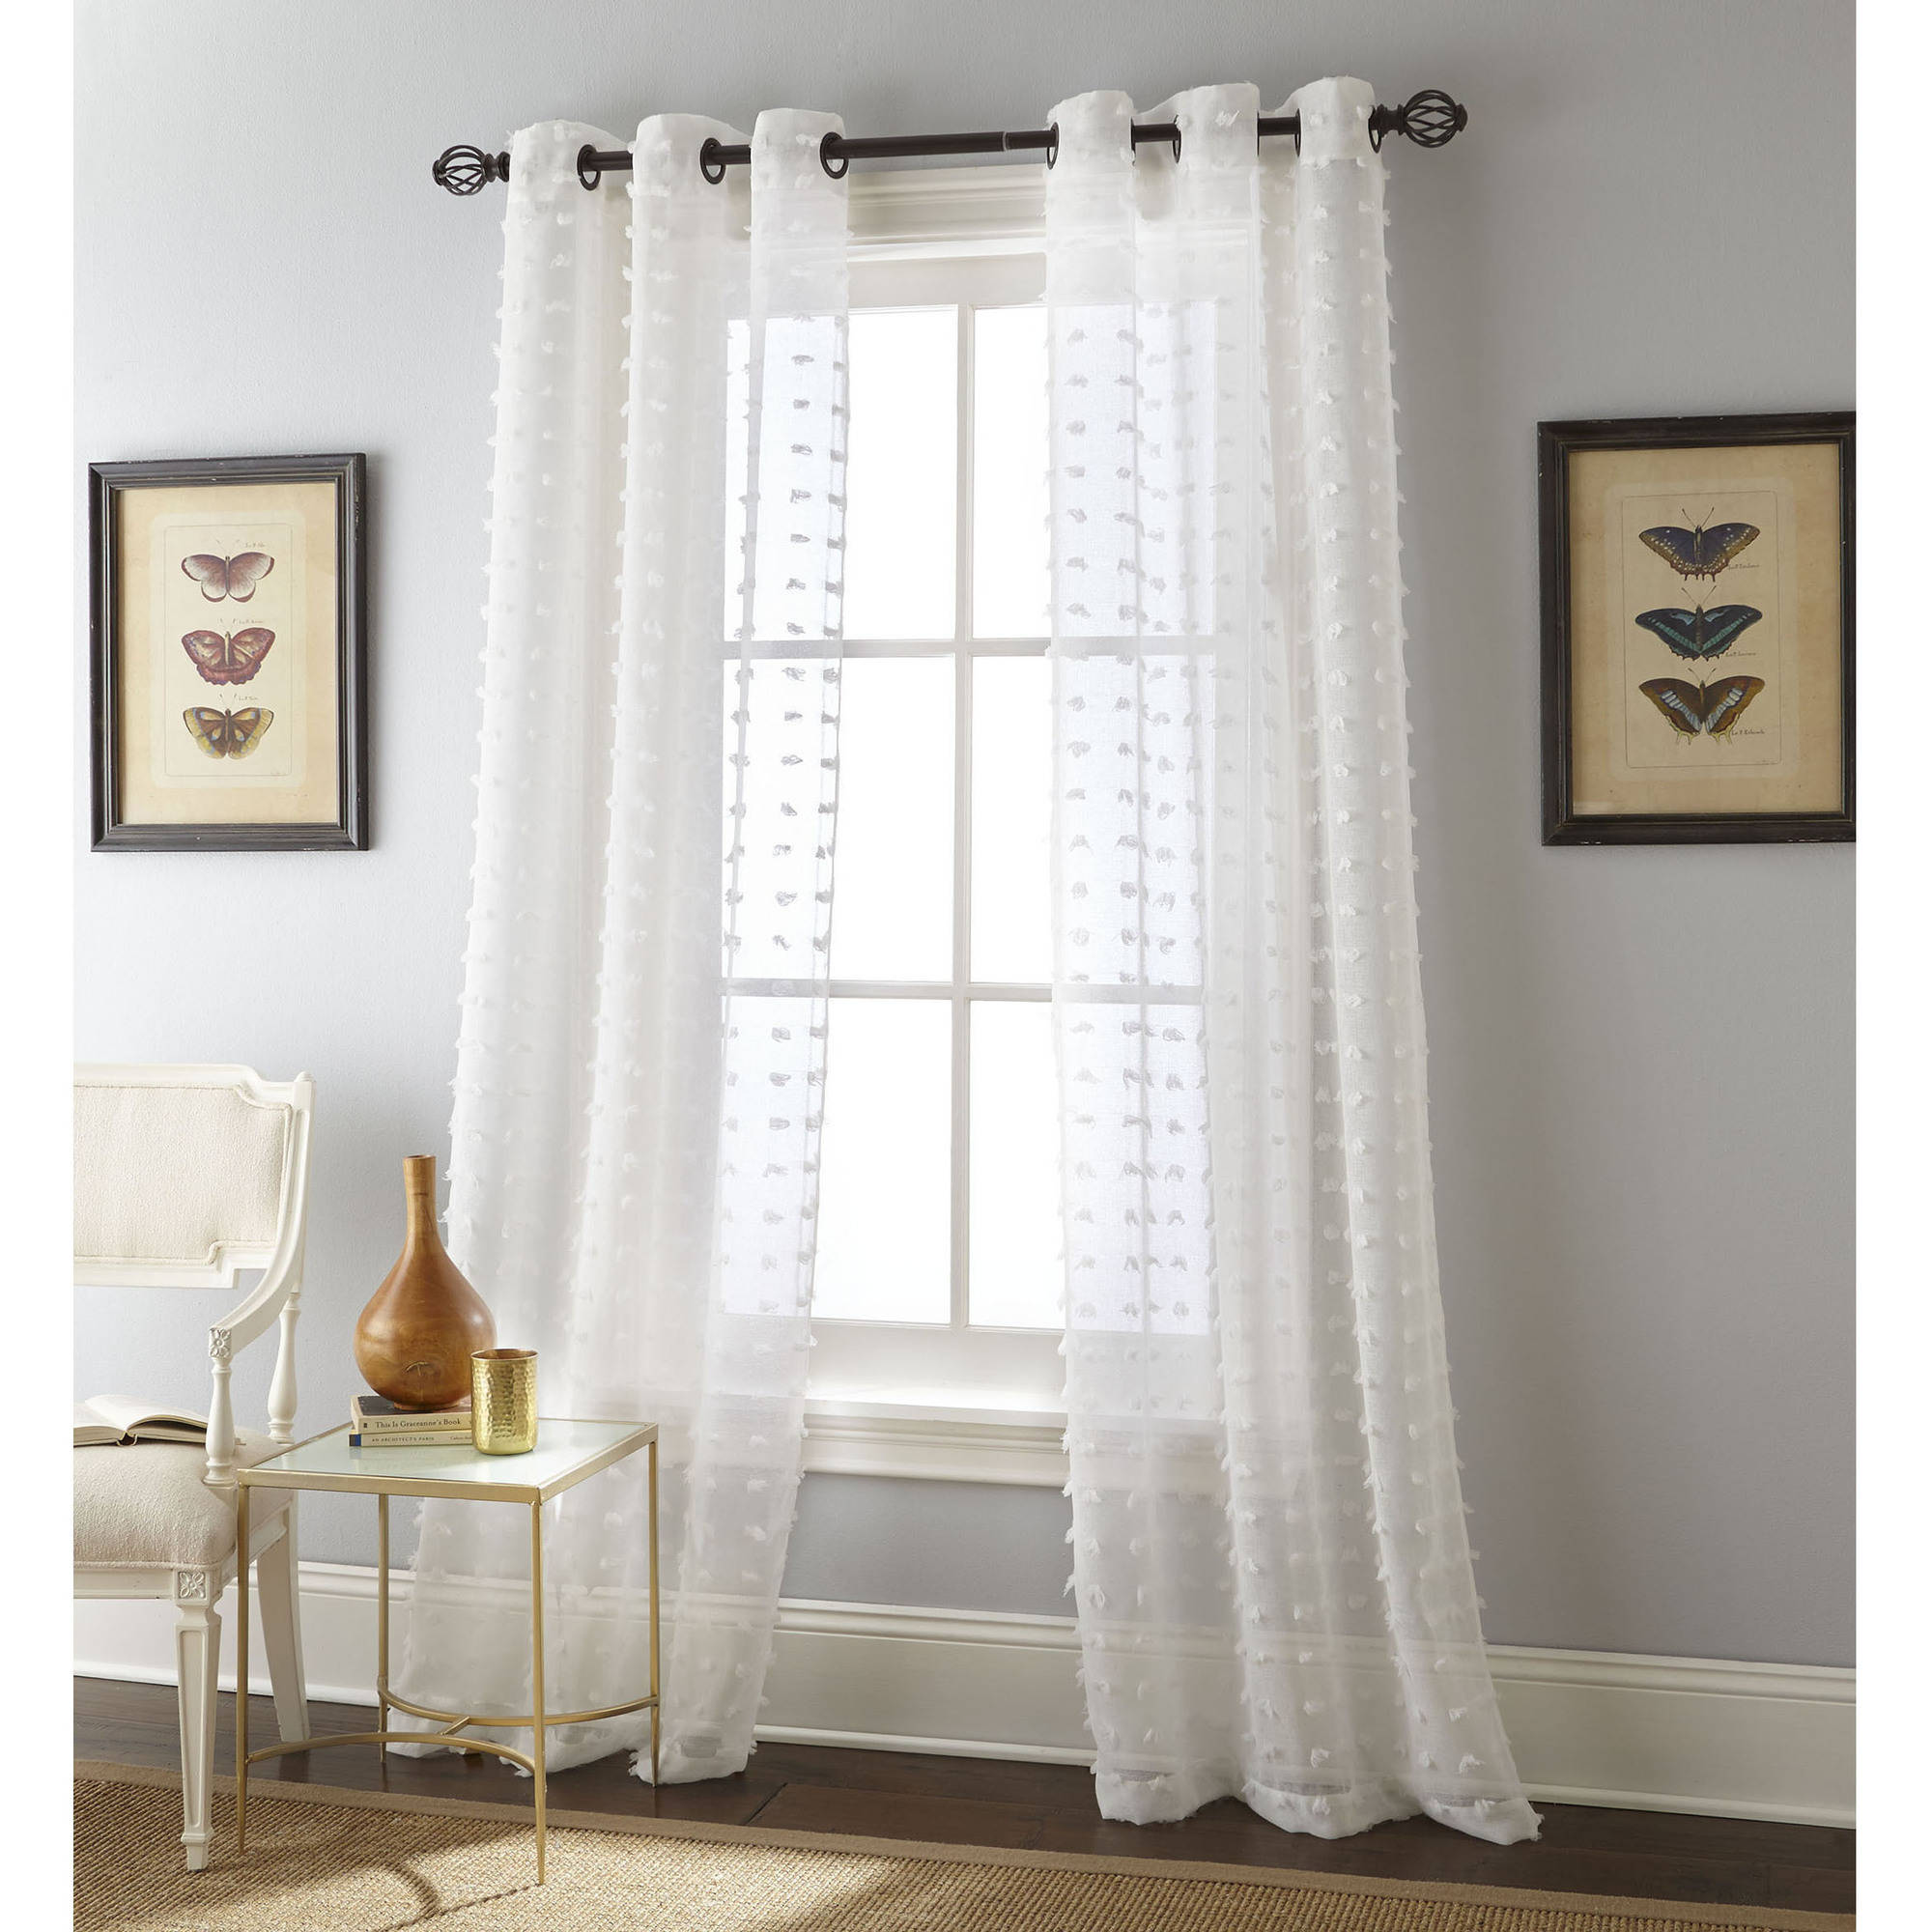 Nanshing Olly Window Curtain Panels Set of 2 with Grommet by NANSHING AMERICA INC